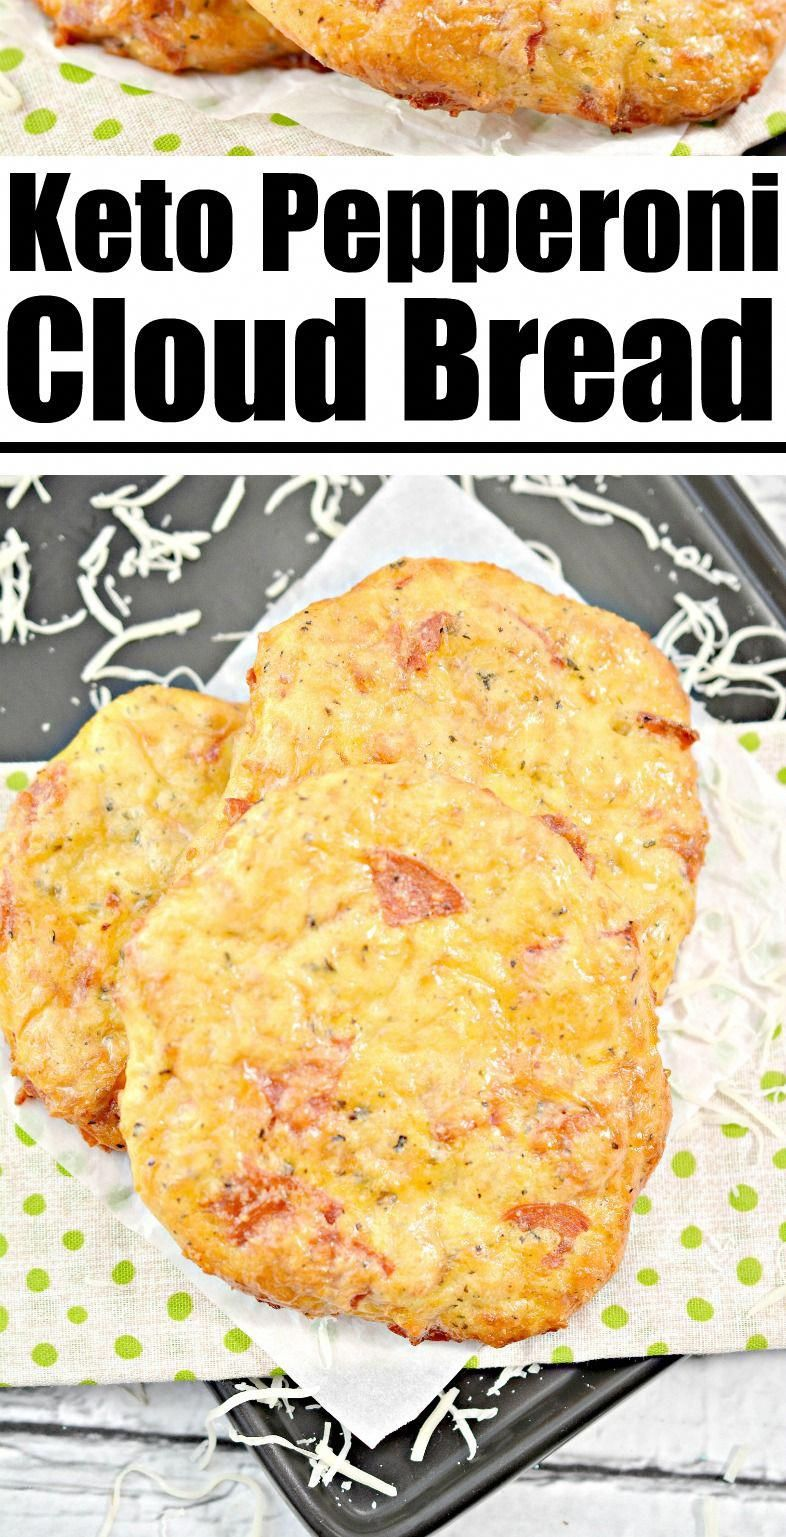 Keto Cloud Bread Recipe